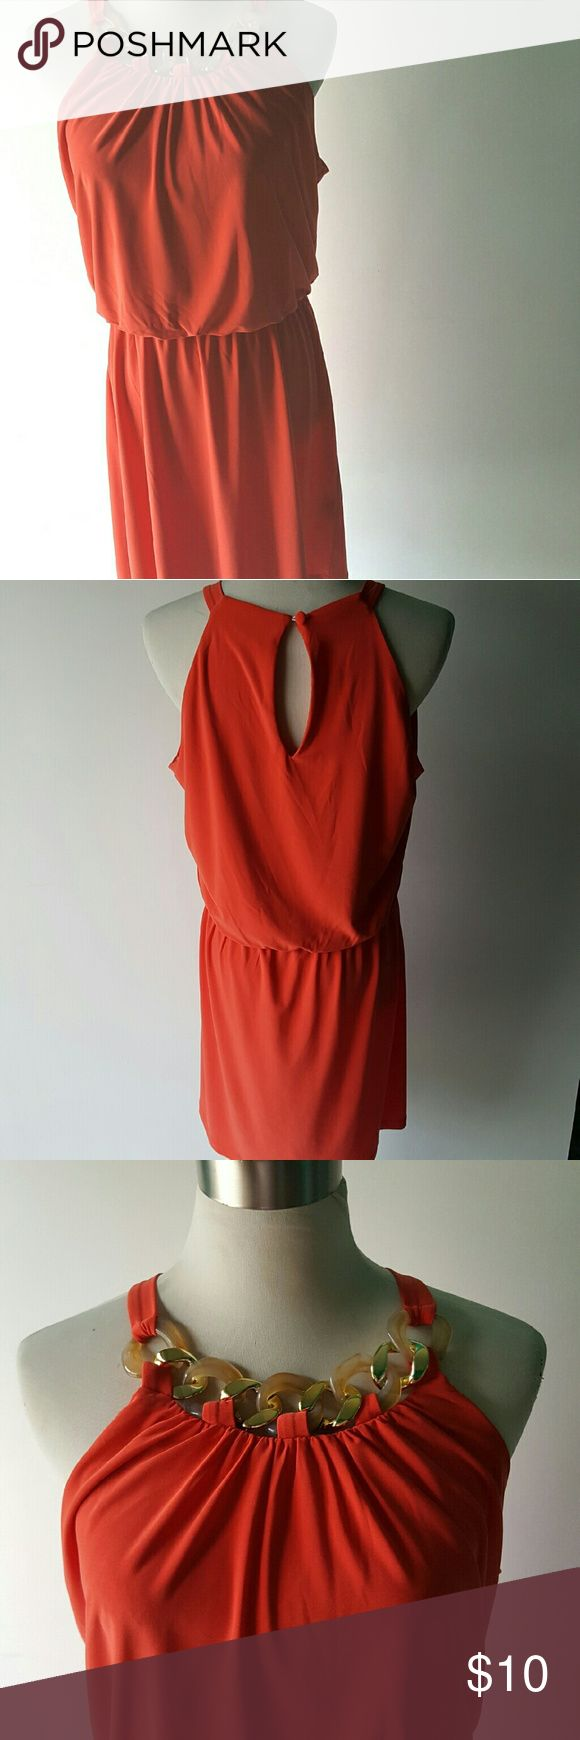 🎉$10 sale🎉JBS Petite Party Dress with Decor Fun orange petite large dress with halter neckline. Hits at waist perfect and very slimming. 🎉🎉 $10 sale for today only on select items🎉🎉 JBS Petite Dresses